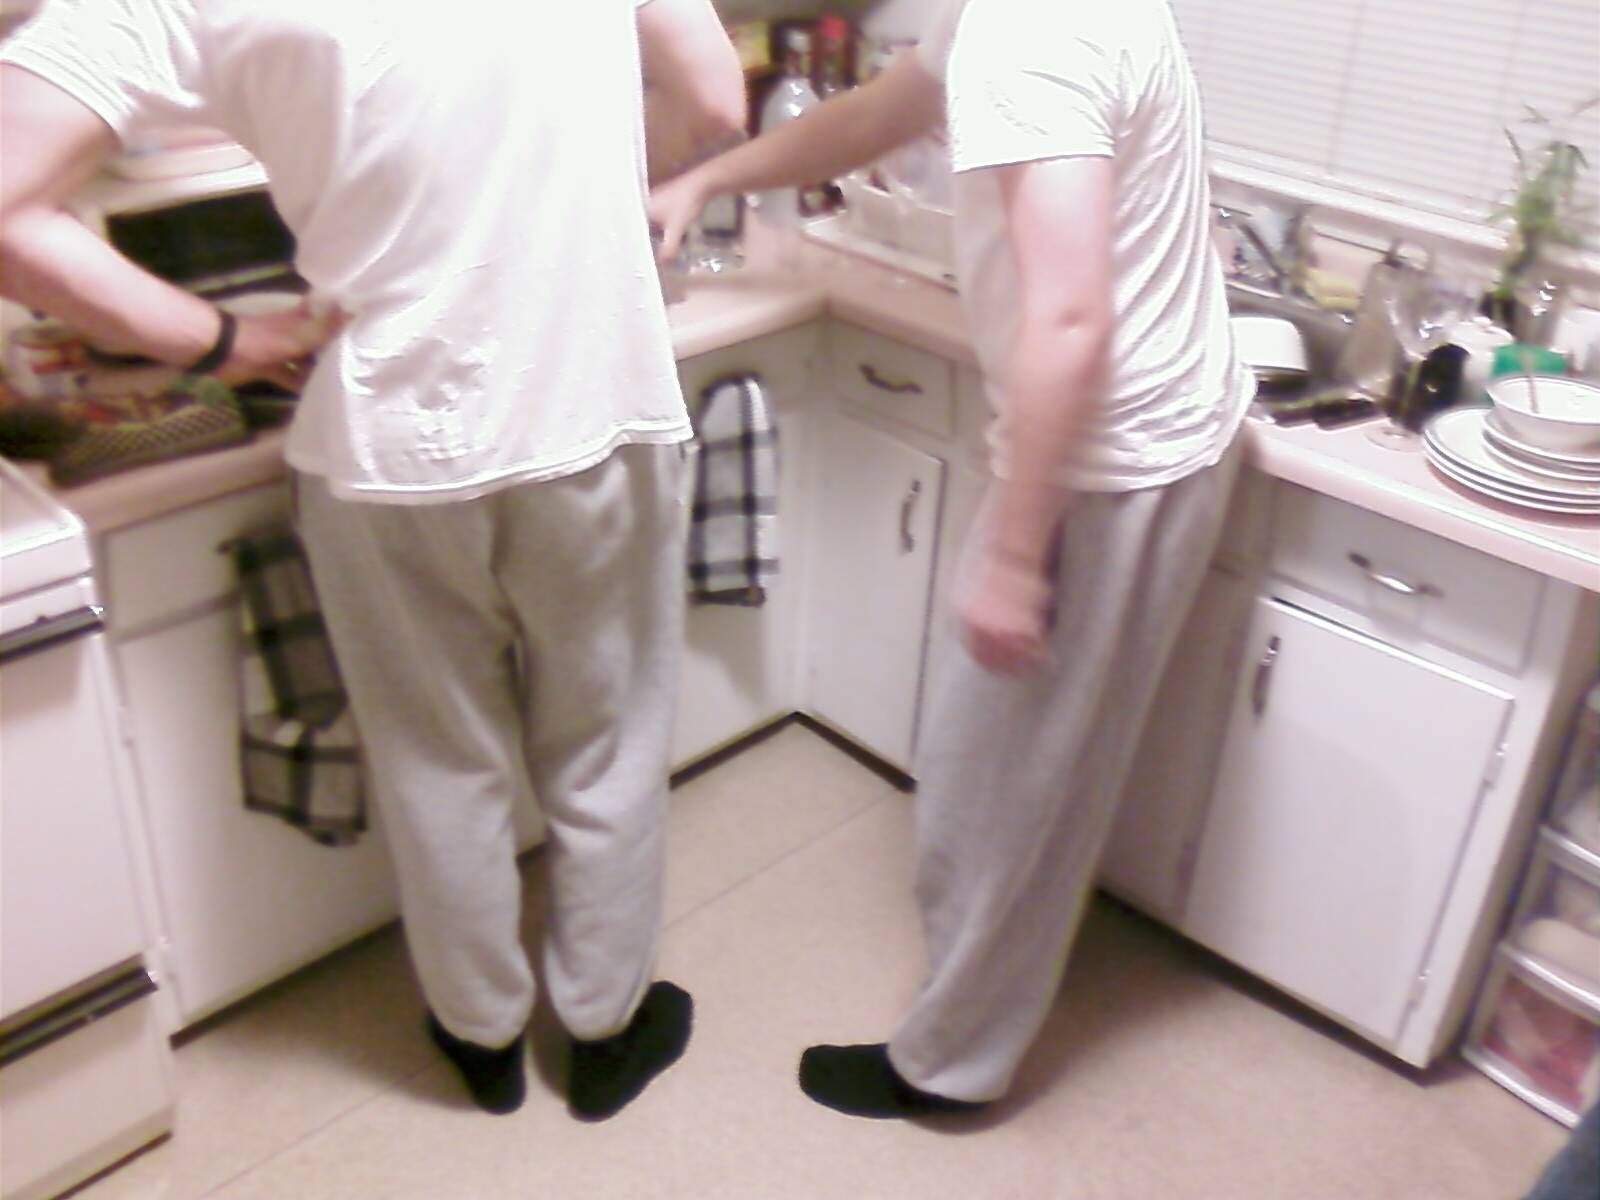 Nick and Doug matching sweatpants